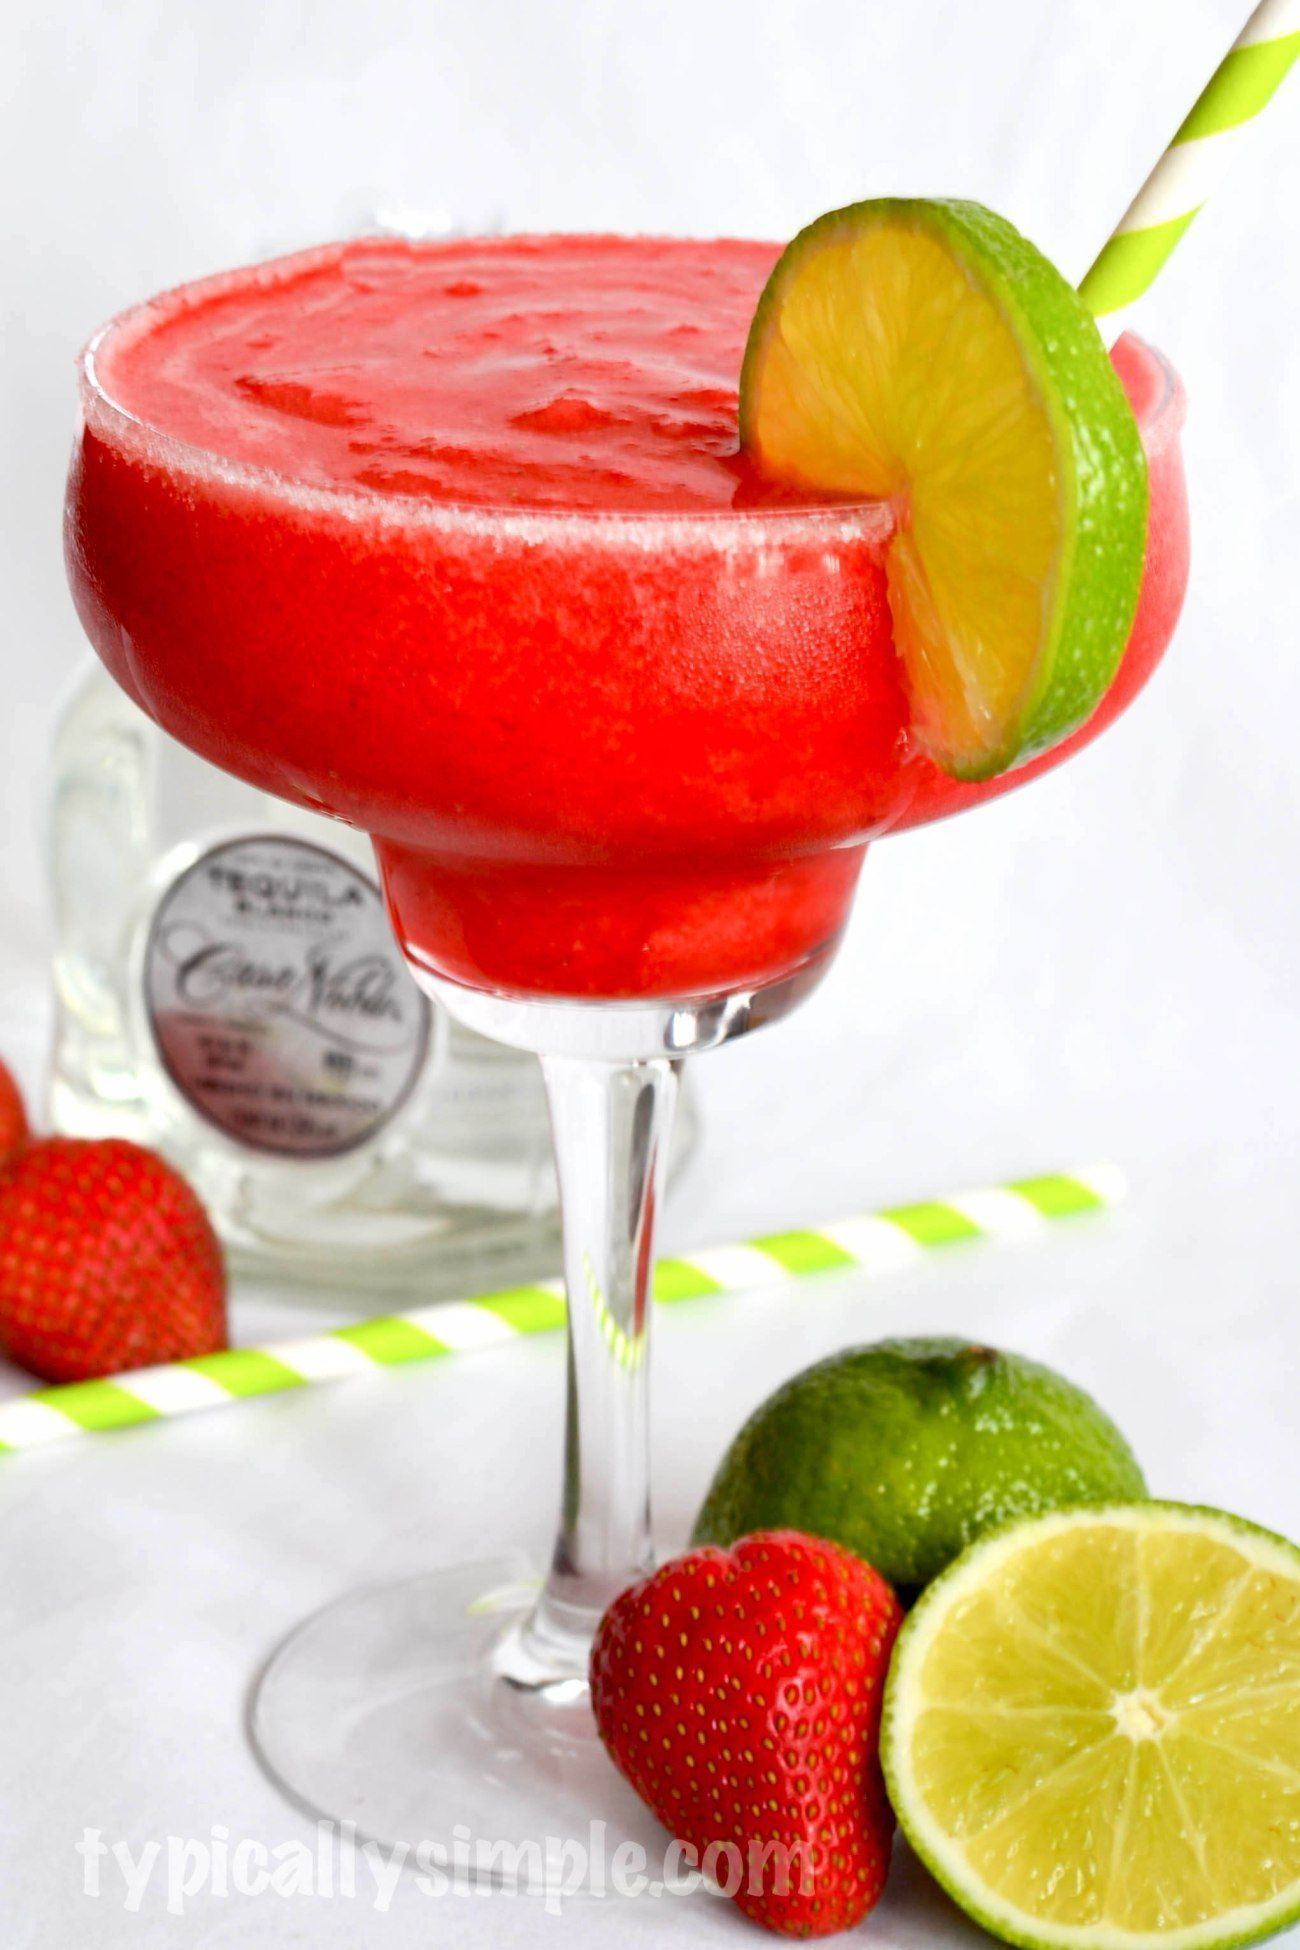 Strawberry-Lime Margarita #limemargarita A delicious strawberry-lime margarita recipe that is easy to make and perfect to enjoy while relaxing by the pool or at the beach! #limemargarita Strawberry-Lime Margarita #limemargarita A delicious strawberry-lime margarita recipe that is easy to make and perfect to enjoy while relaxing by the pool or at the beach! #frozenmargaritarecipes Strawberry-Lime Margarita #limemargarita A delicious strawberry-lime margarita recipe that is easy to make and perfec #limemargarita